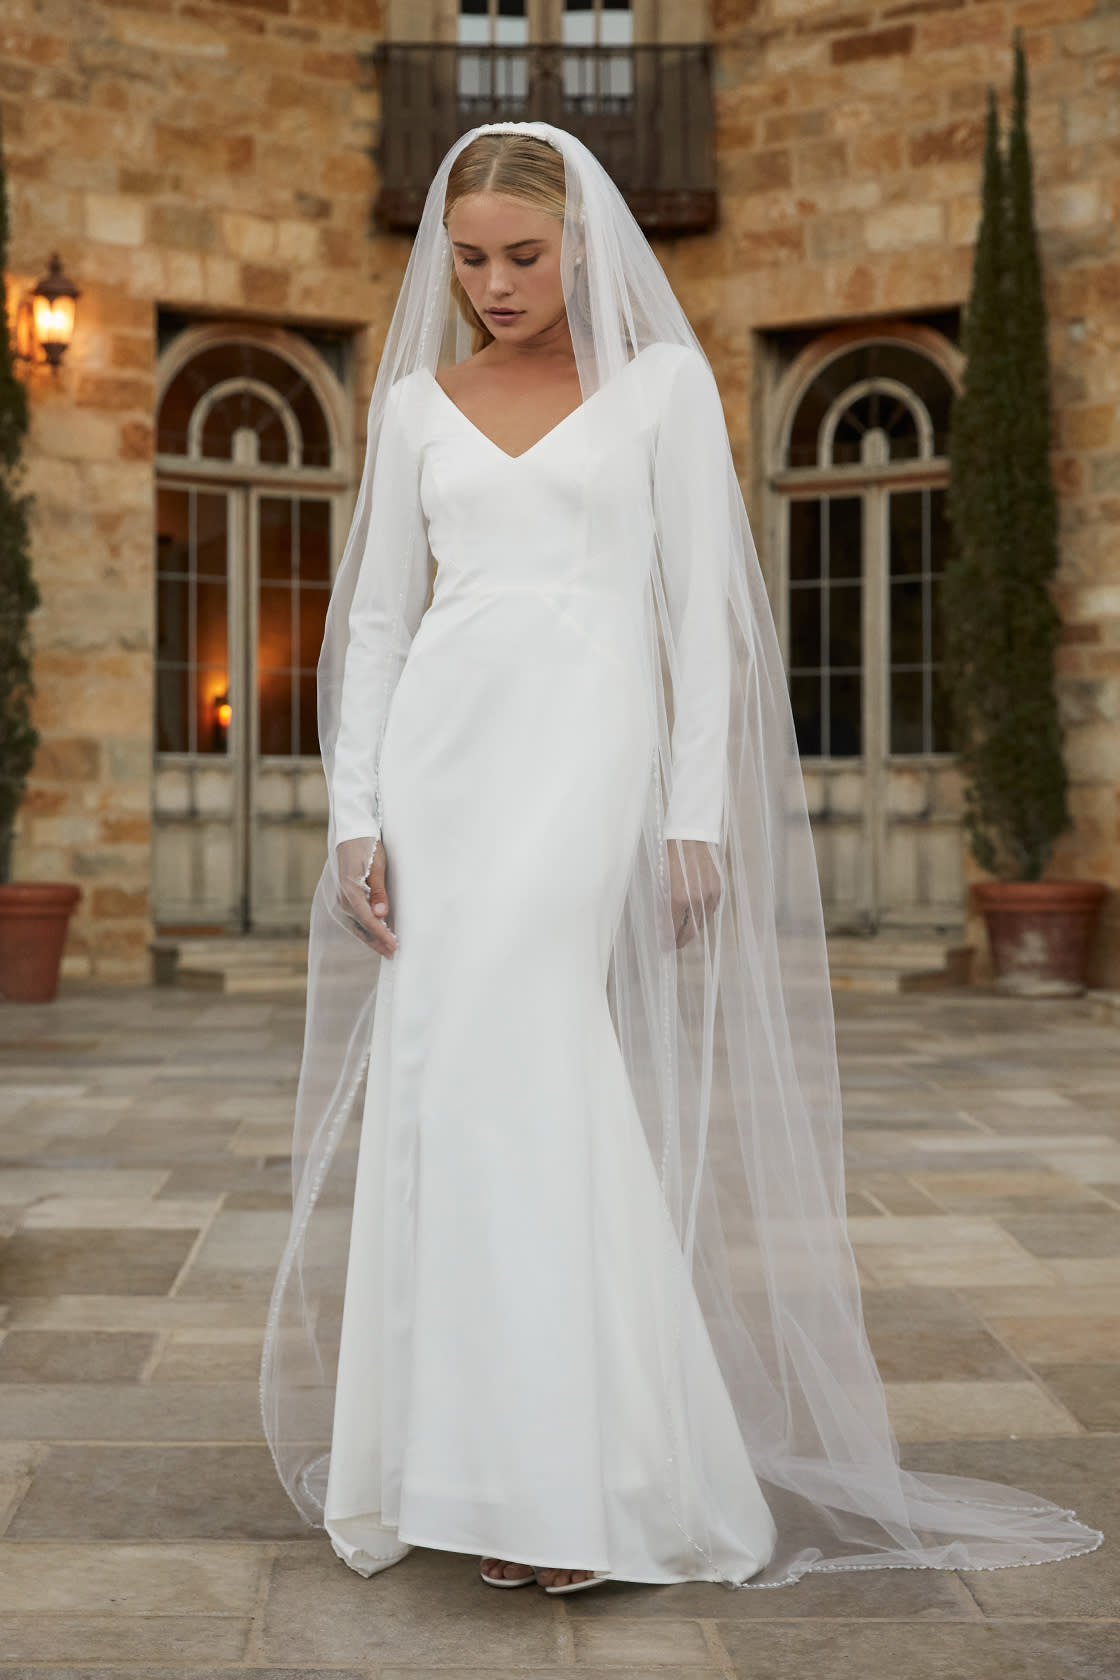 Modest wedding dress with long sleeves and veil